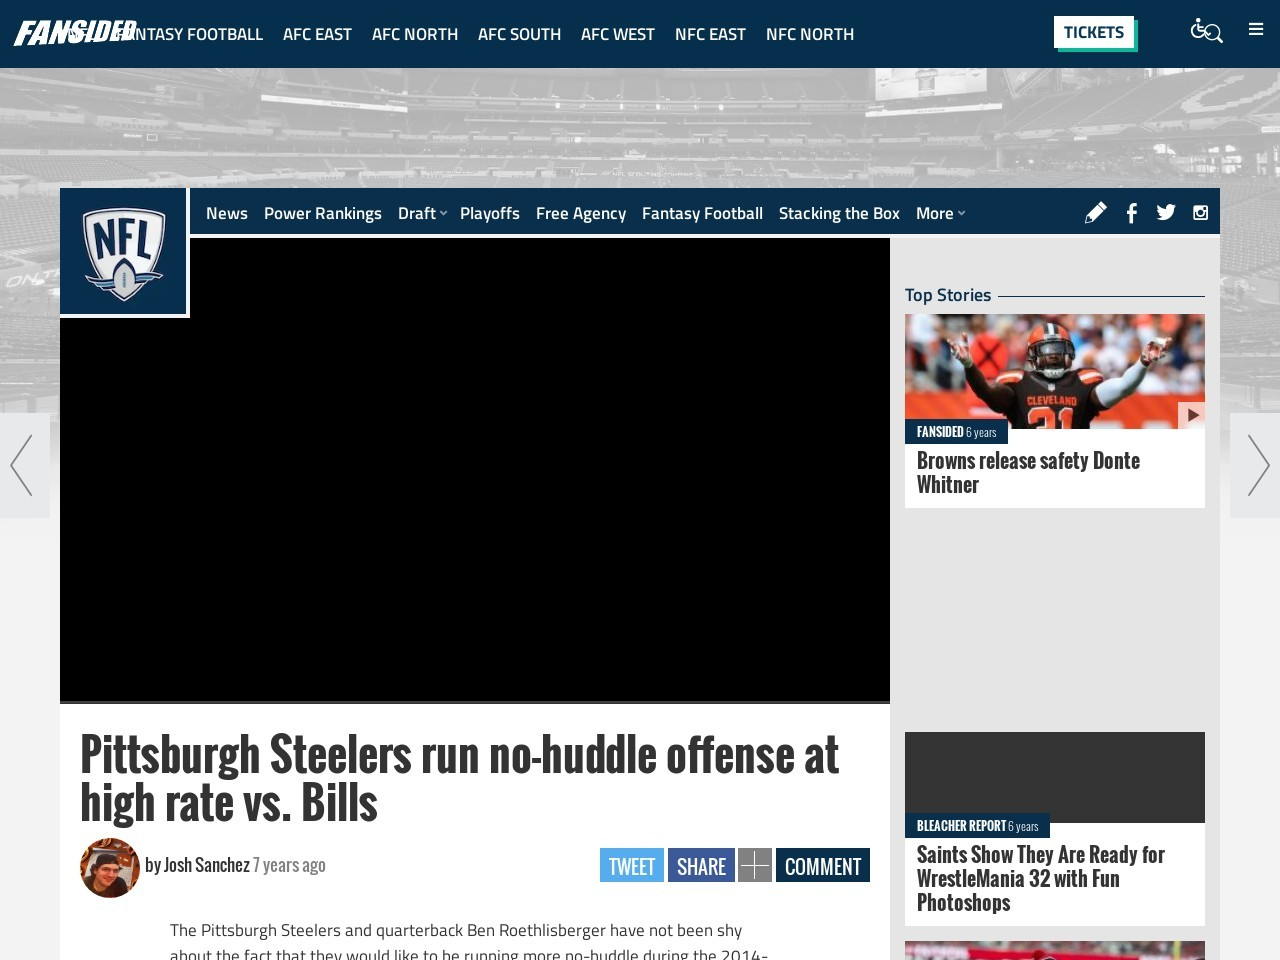 Pittsburgh Steelers run no-huddle offense at high rate vs. Bills